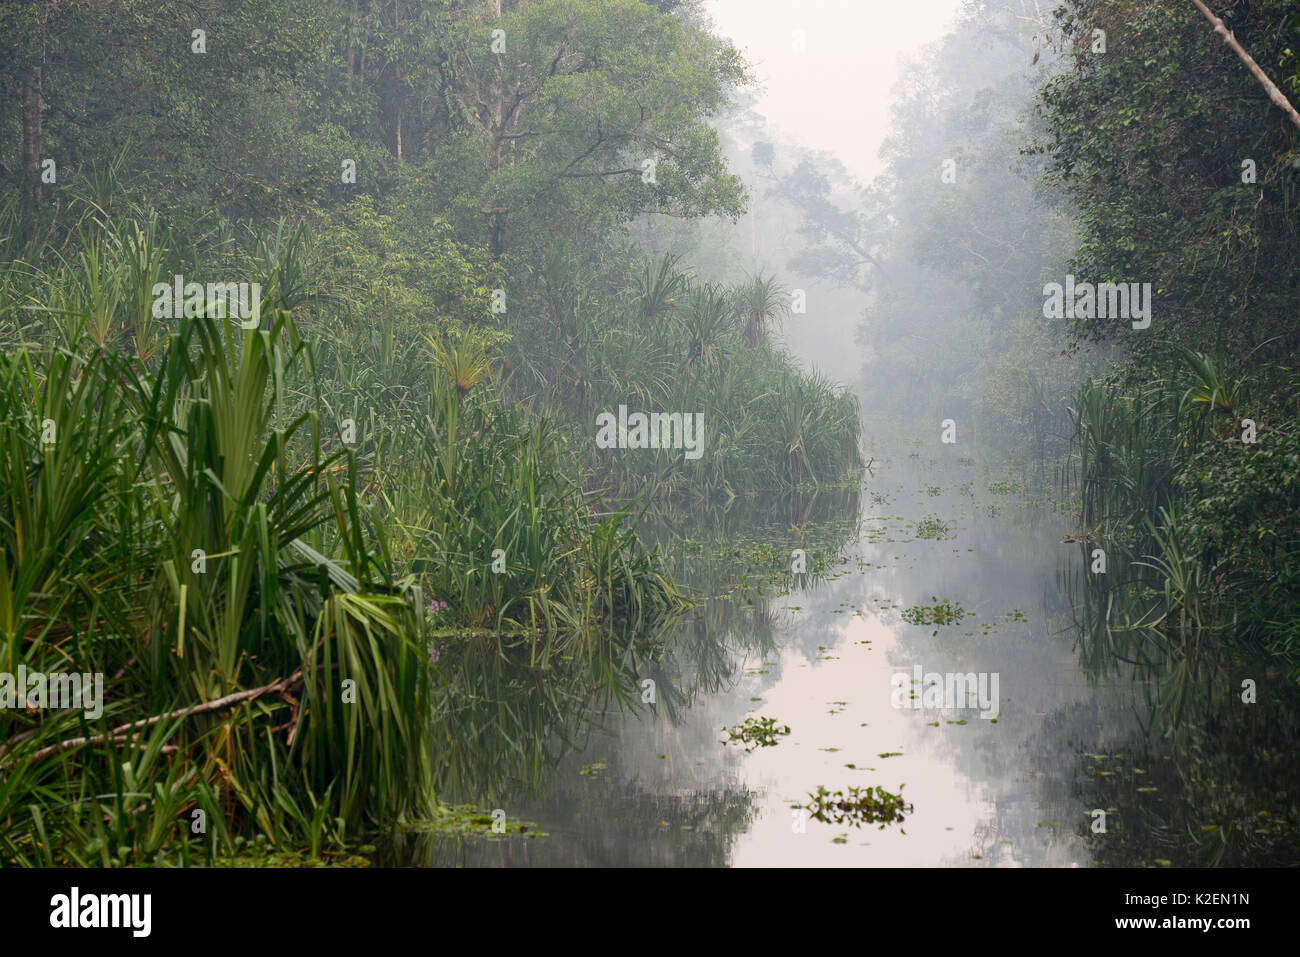 Sekonyer River with smoke in the air from an illegal forest fire, Tanjung Puting National Park, Indonesia, Central Borneo Province, Central Kalimantan, October 2015. - Stock Image